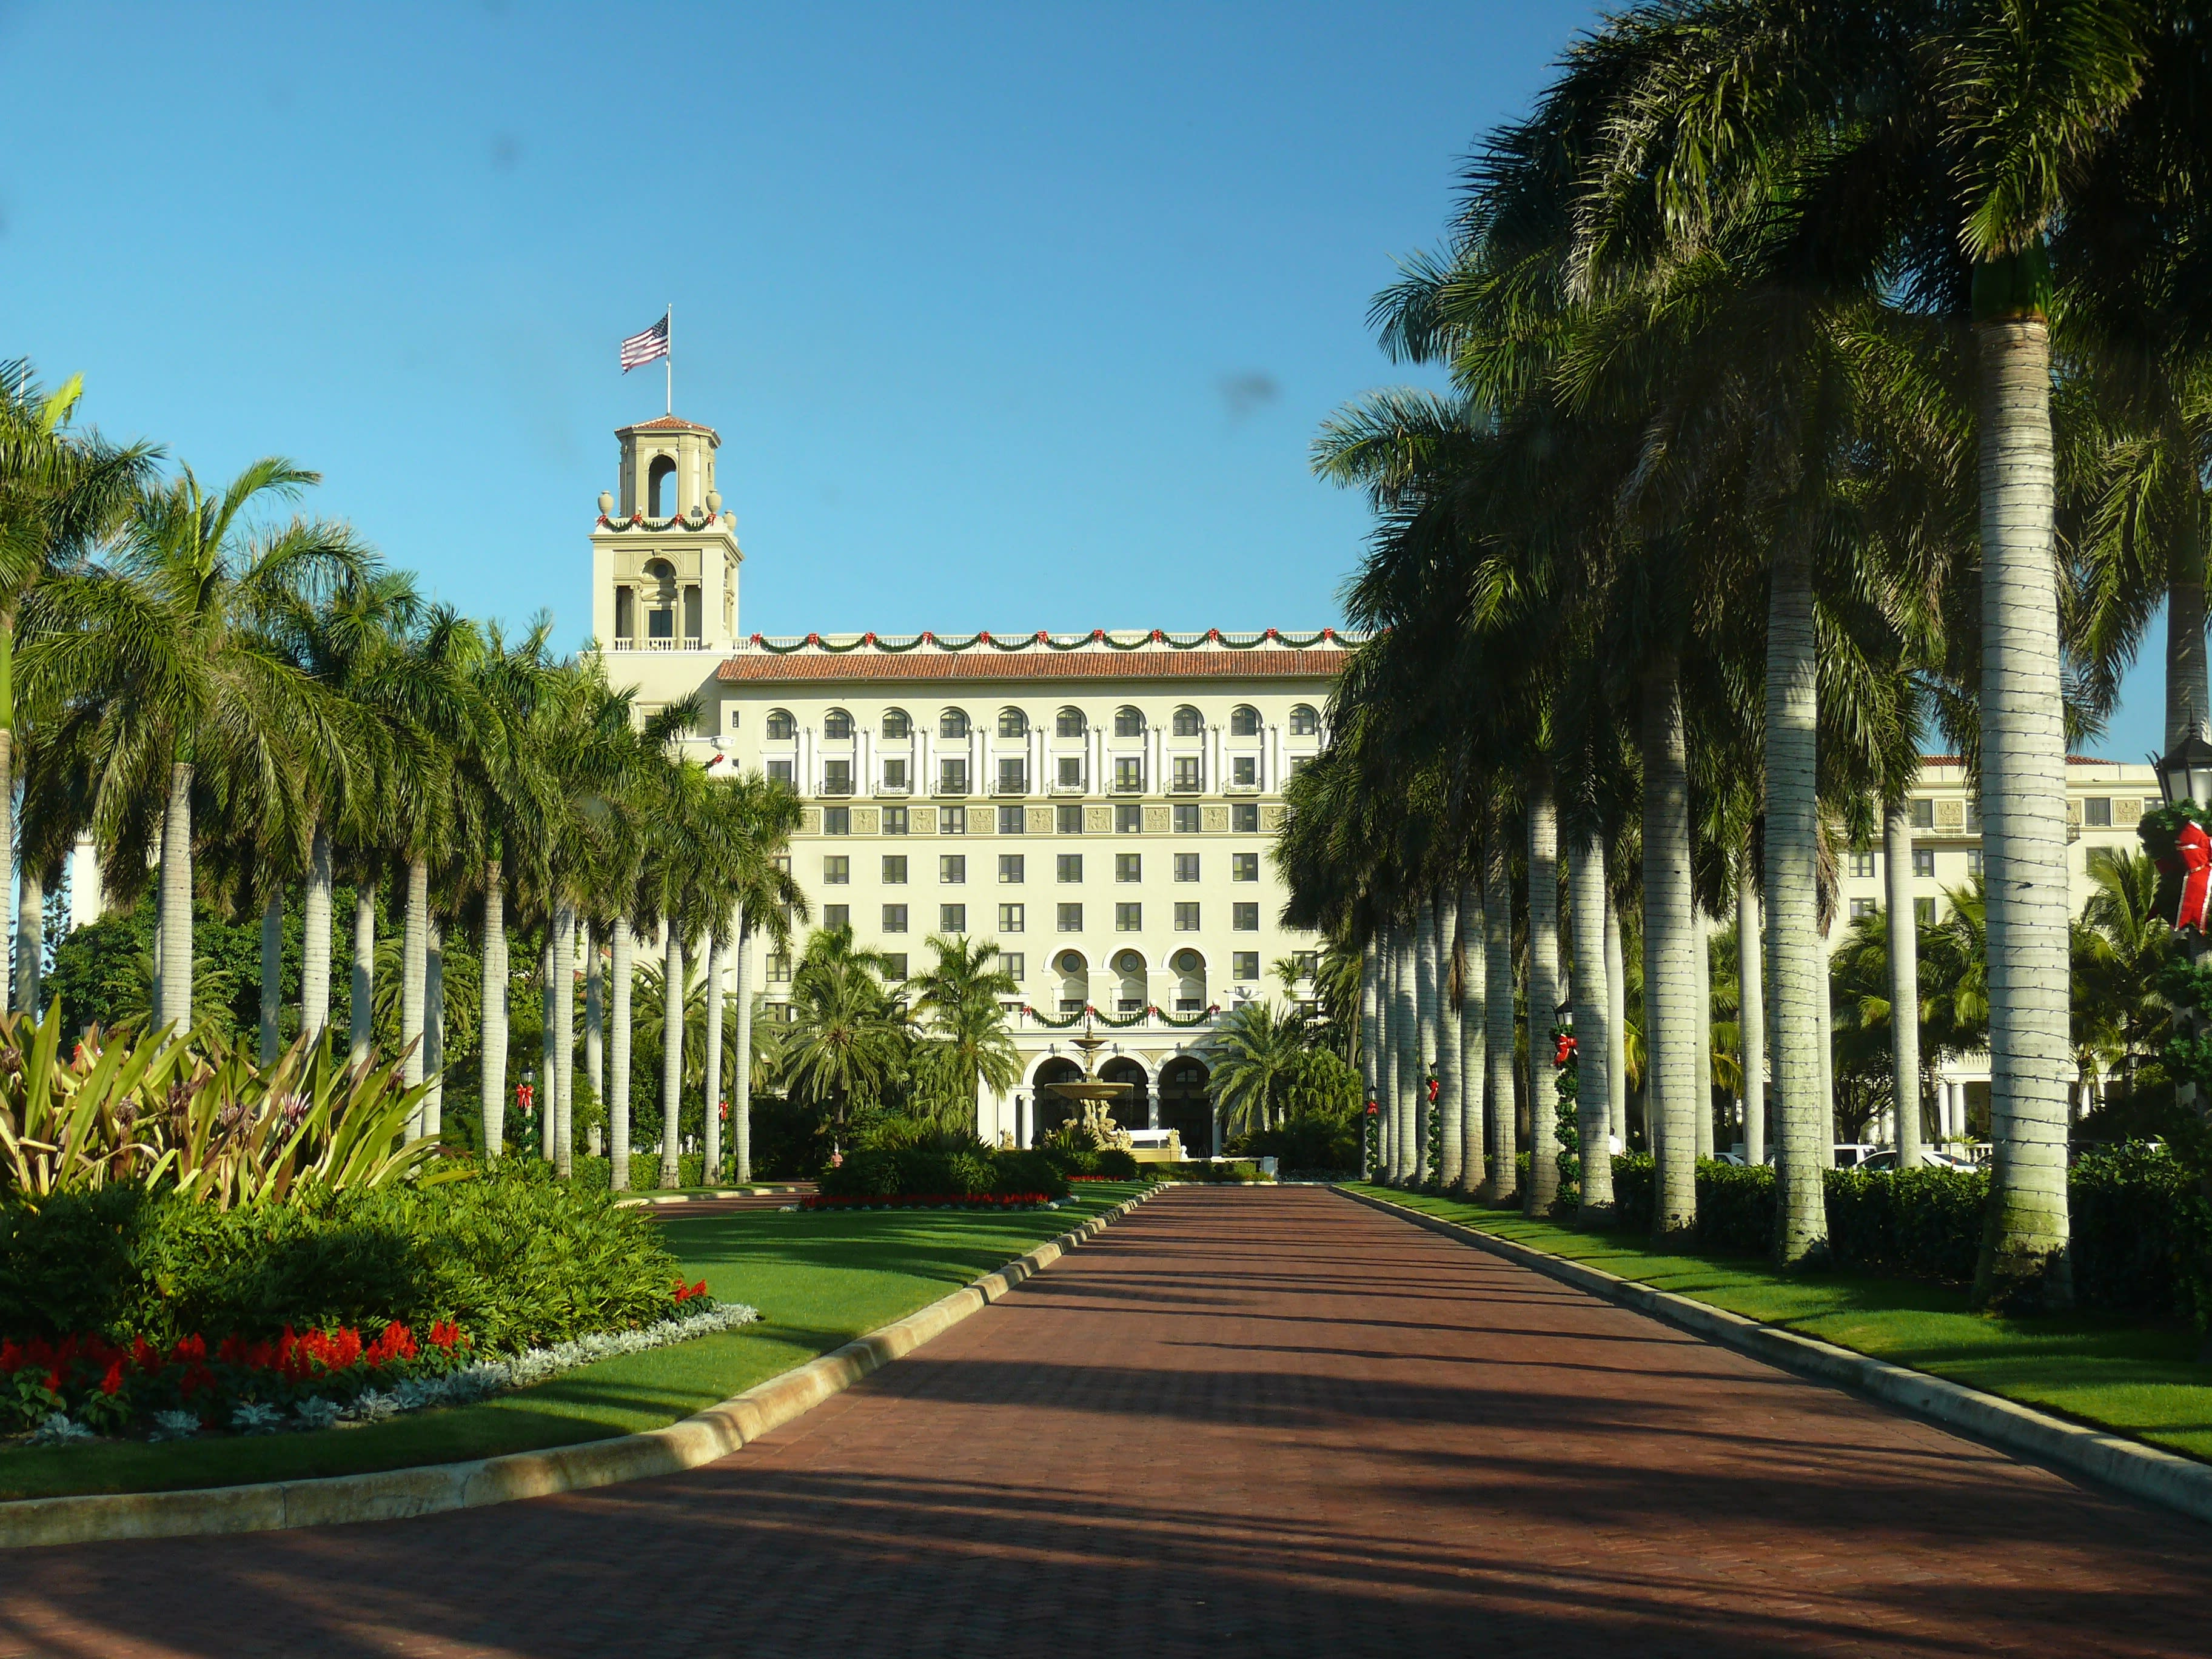 The Breakers in Palm Beach stands as an icon of the rich and famous.